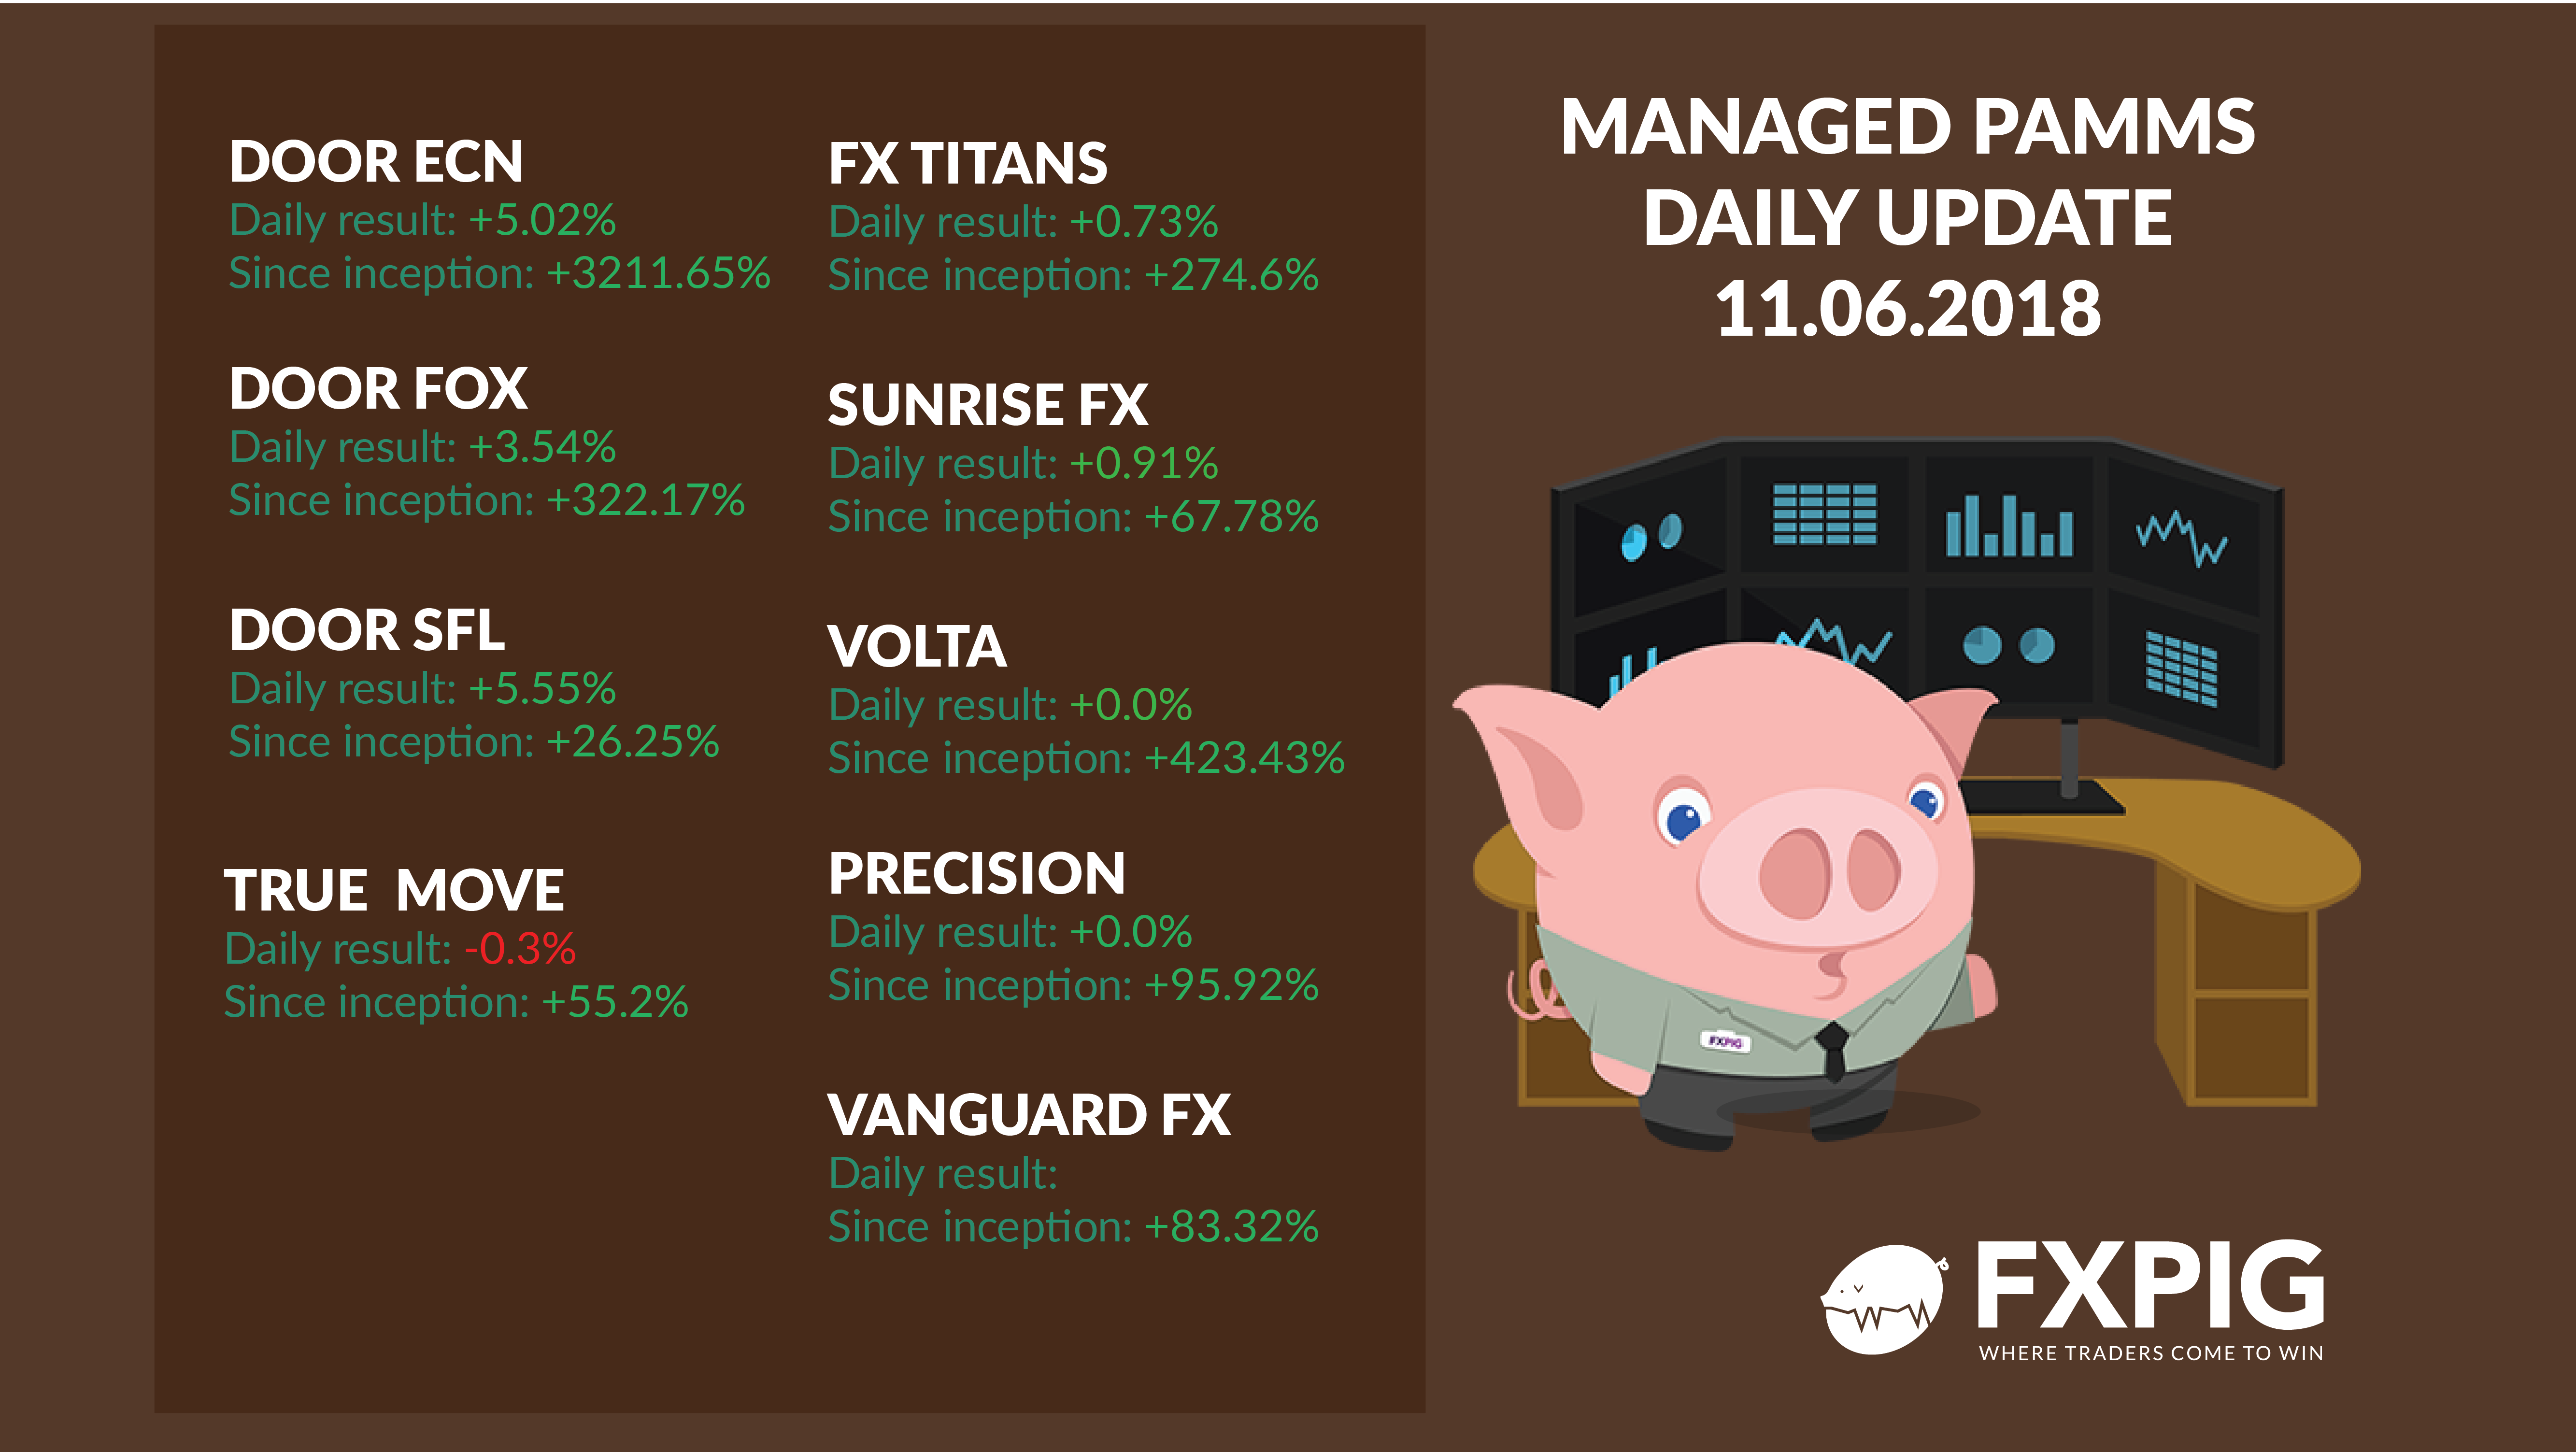 FOREX_managed-daily-accounts1106_FXPIG